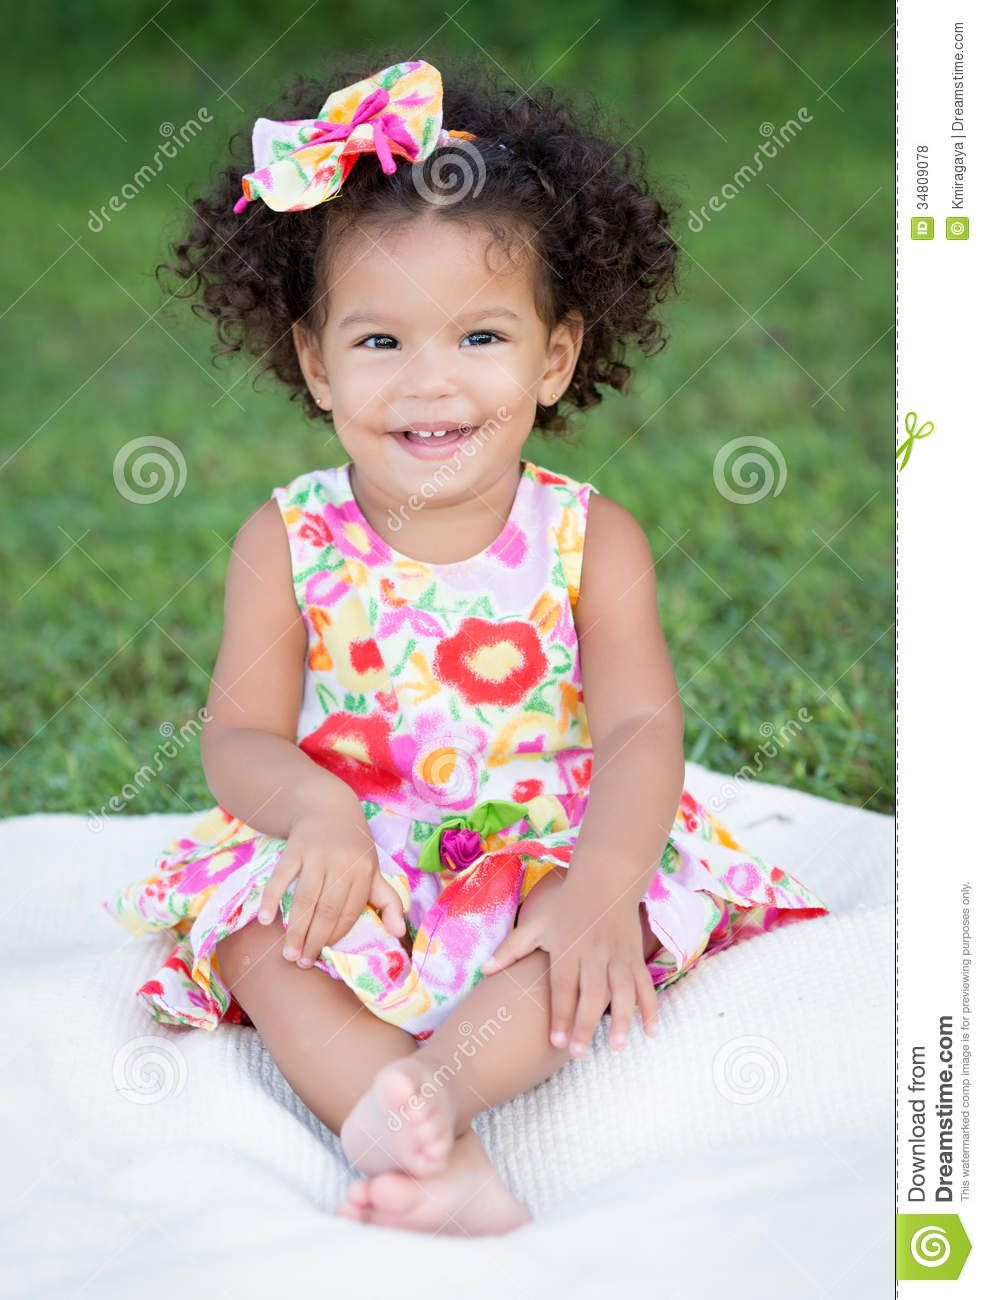 hispanic girl with an afro hairstyle - download from over 26